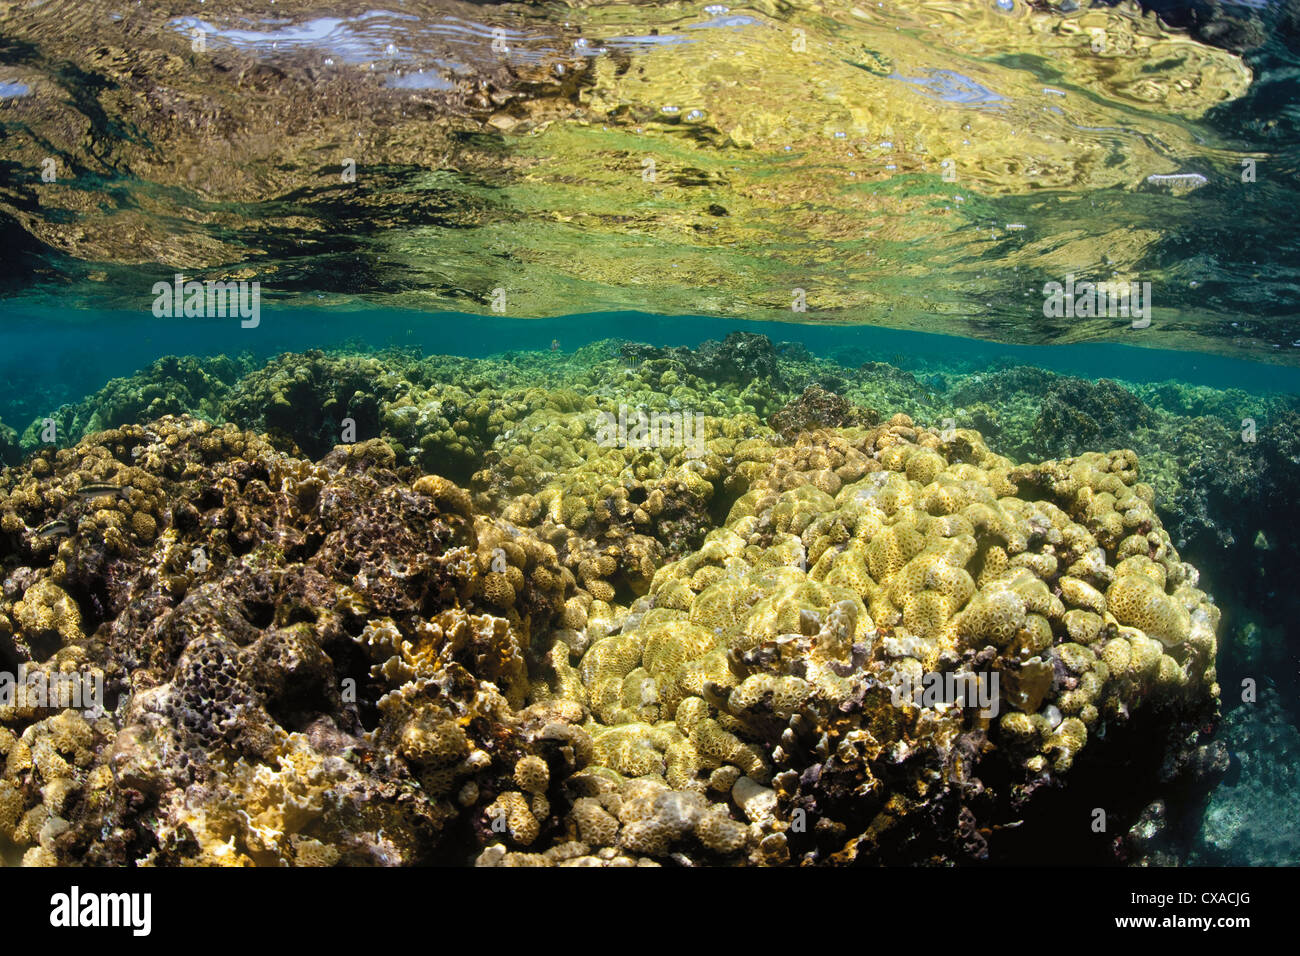 Coral reef at the surface of the ocean in Honduras. - Stock Image